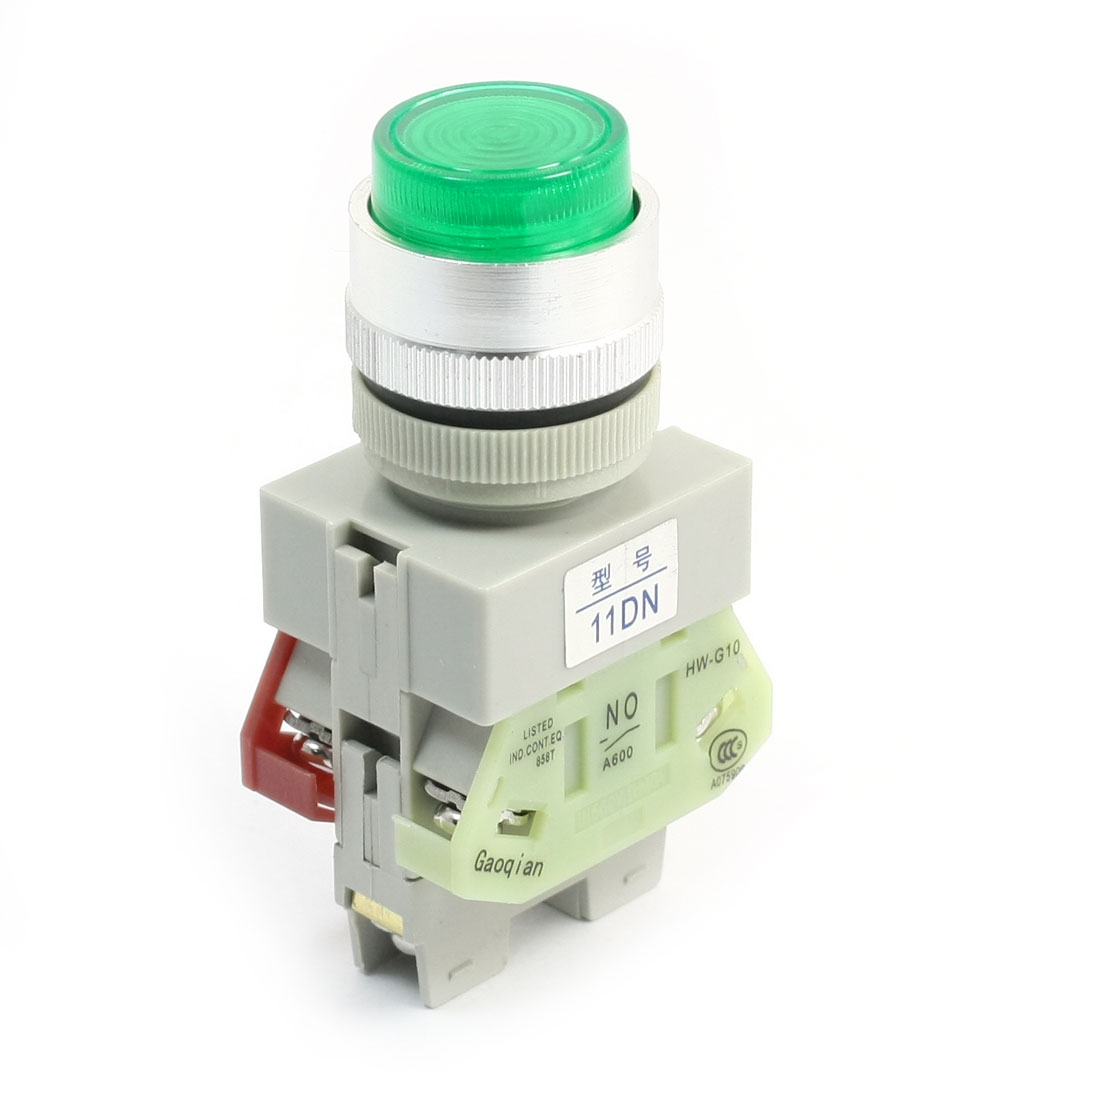 Industrial Momentary DPST Green Indicator Light Push Button Switch 660V 10A